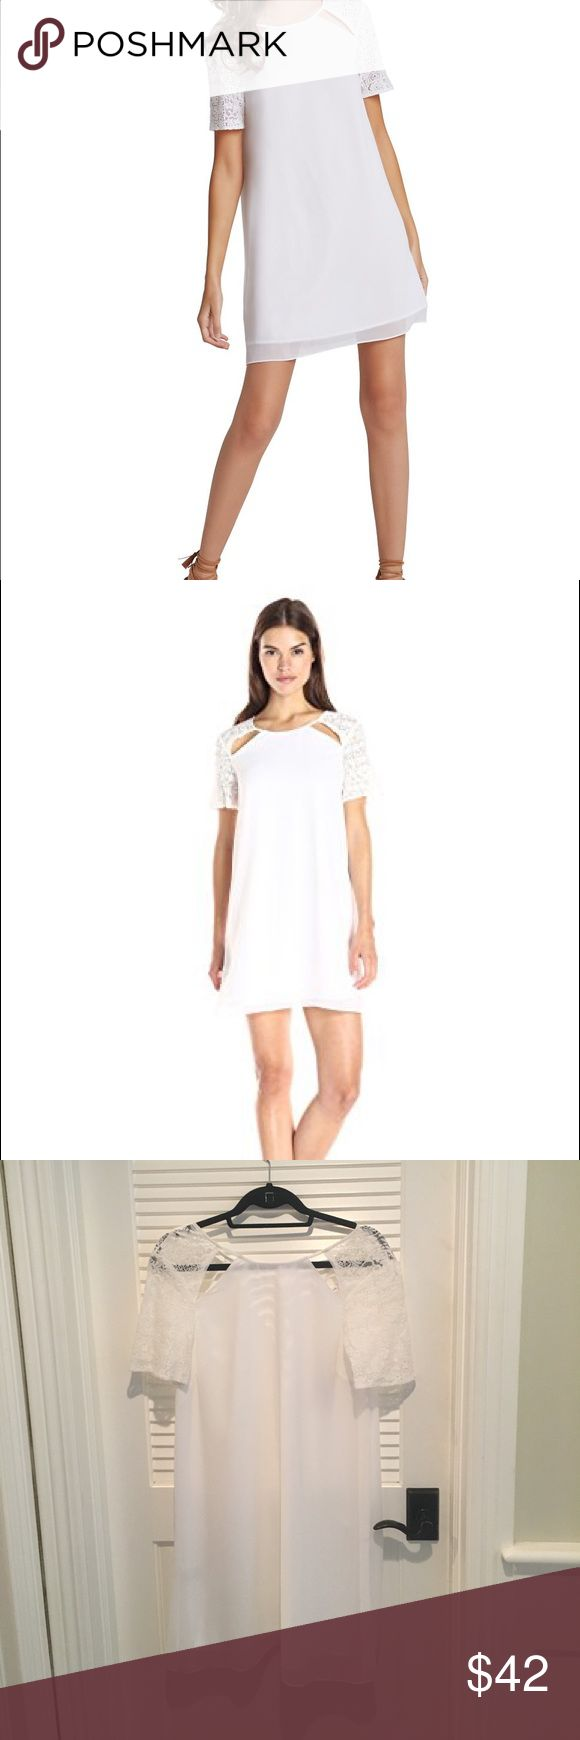 Bcbg White shift dress with lace detail Bcbg White shift dress with lace detail BCBGeneration Dresses